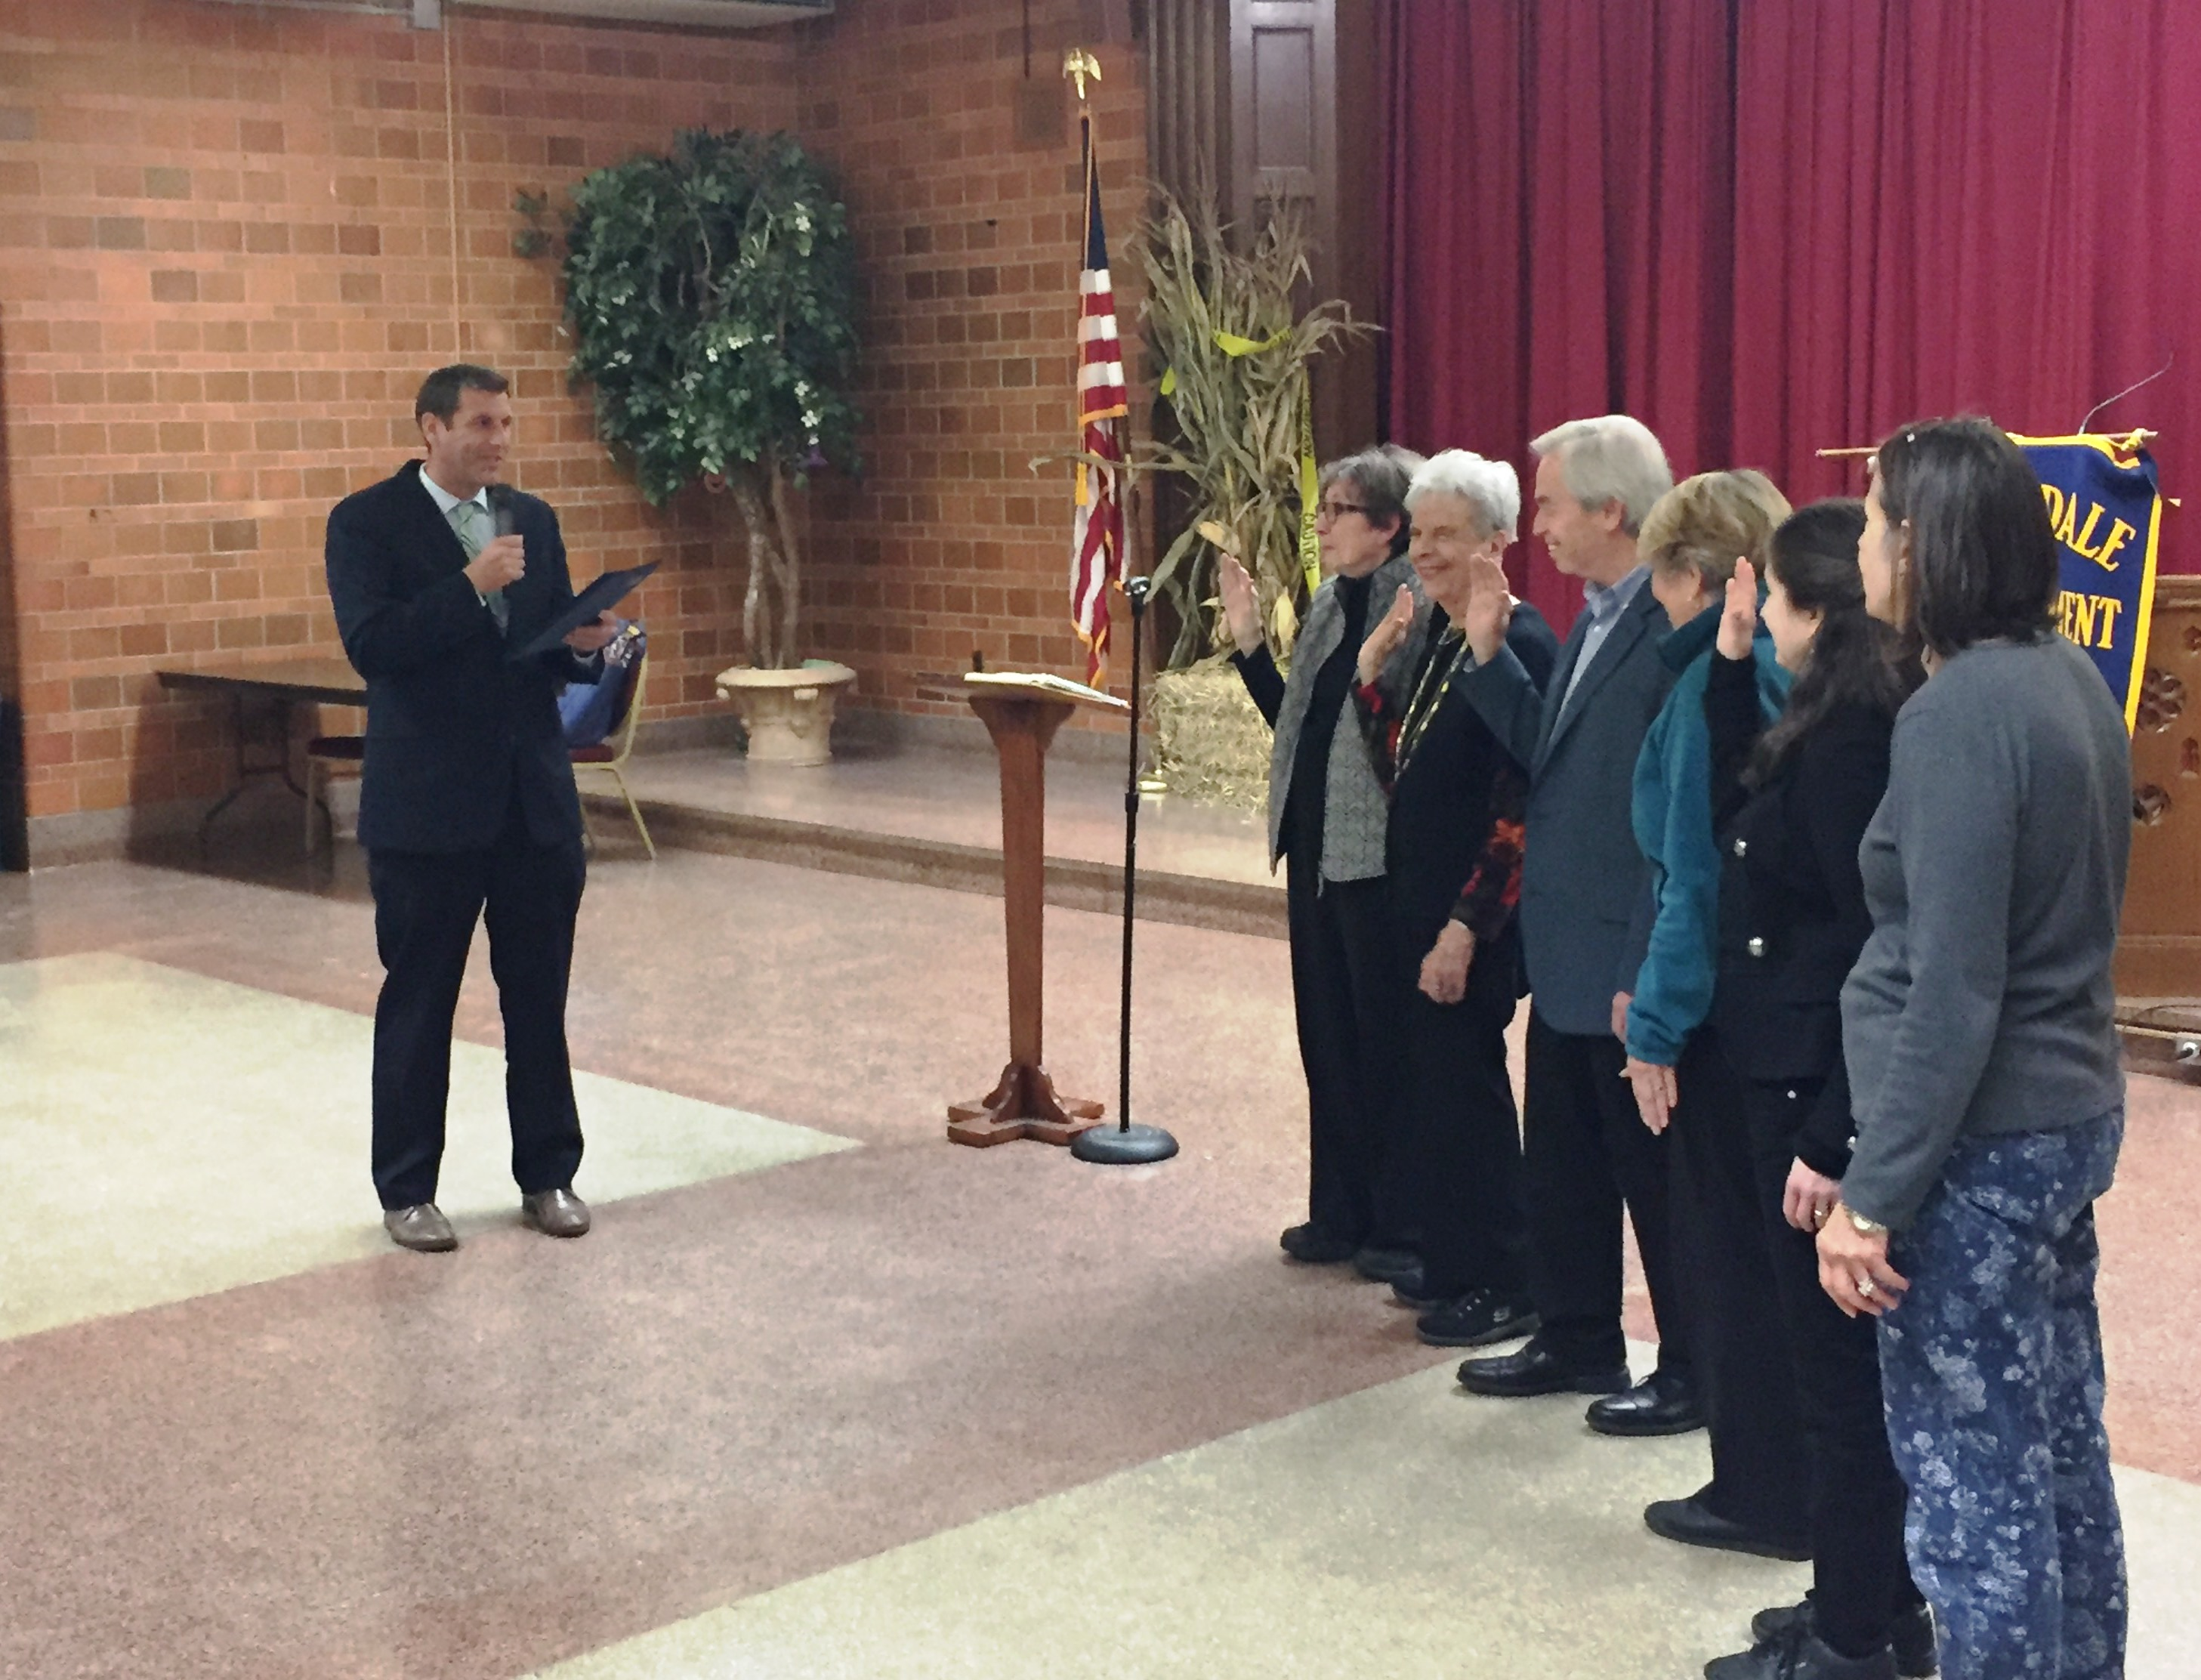 On October 16, 2018, Assemblyman Braunstein conducted the swearing-in ceremony of the Auburndale Improvement Association, Inc. Board of Directors.